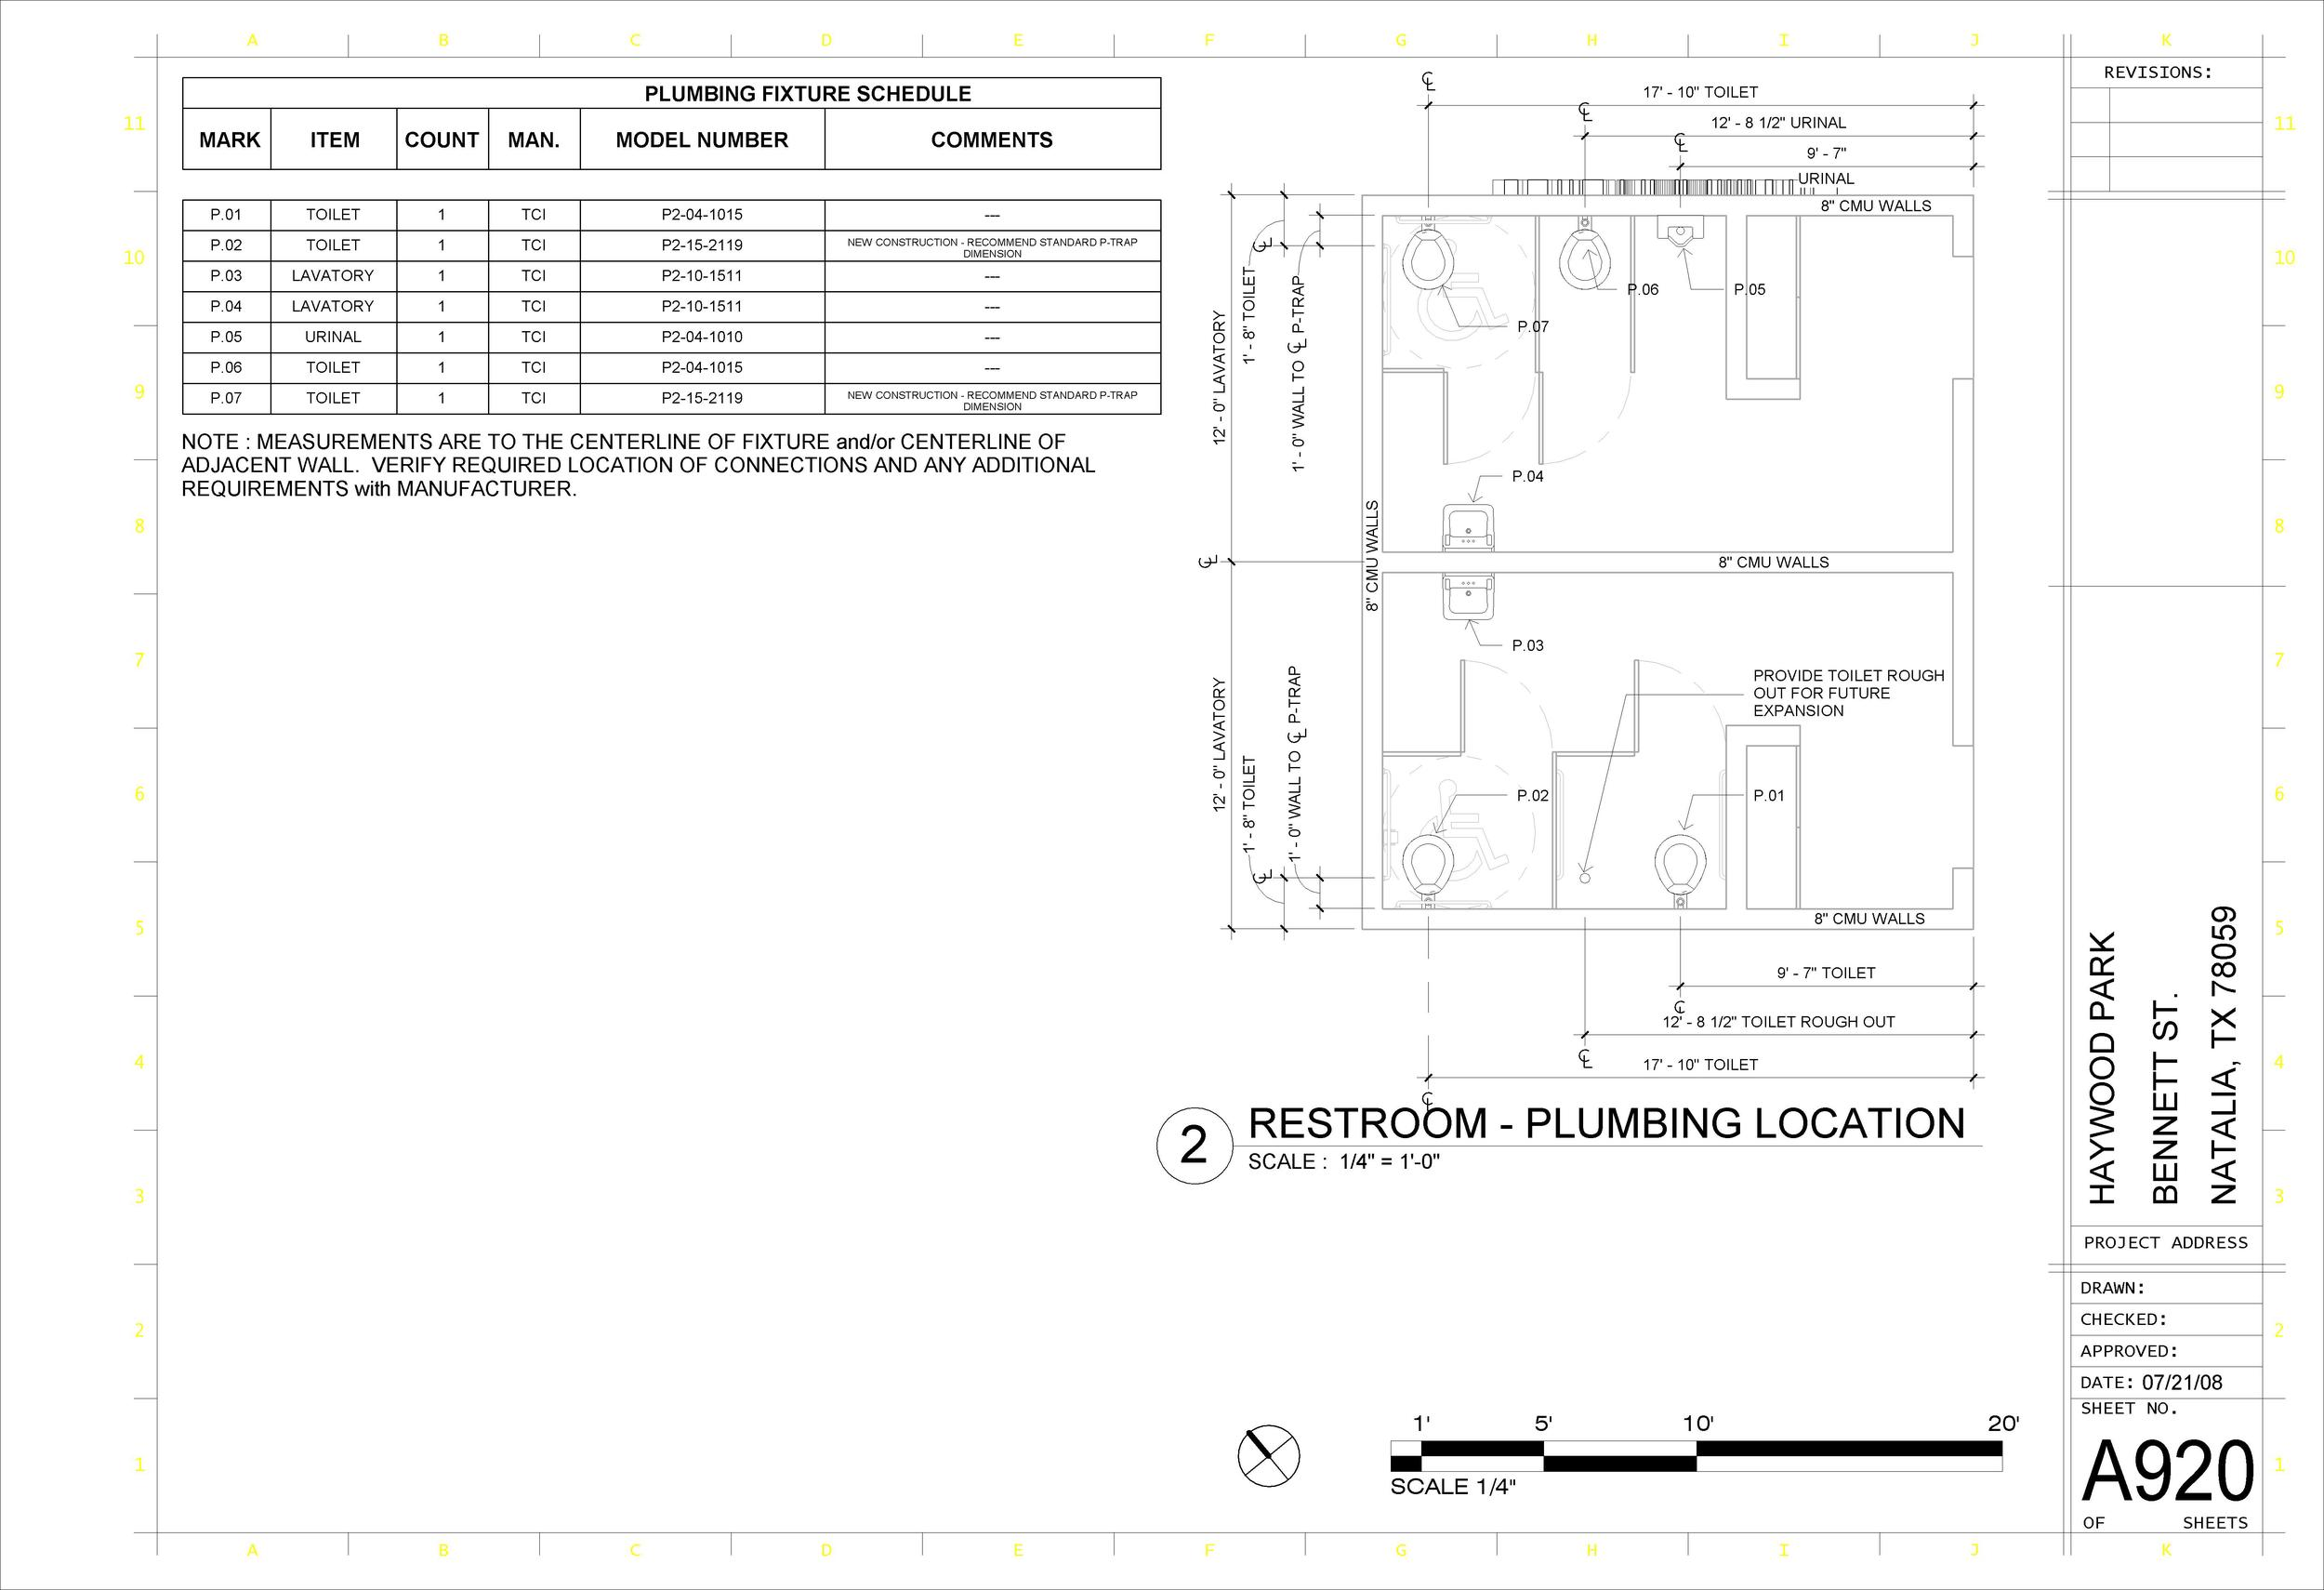 CITY PARK - Sheet - A920 - (OUR) FOUNDATION PLANS.jpg